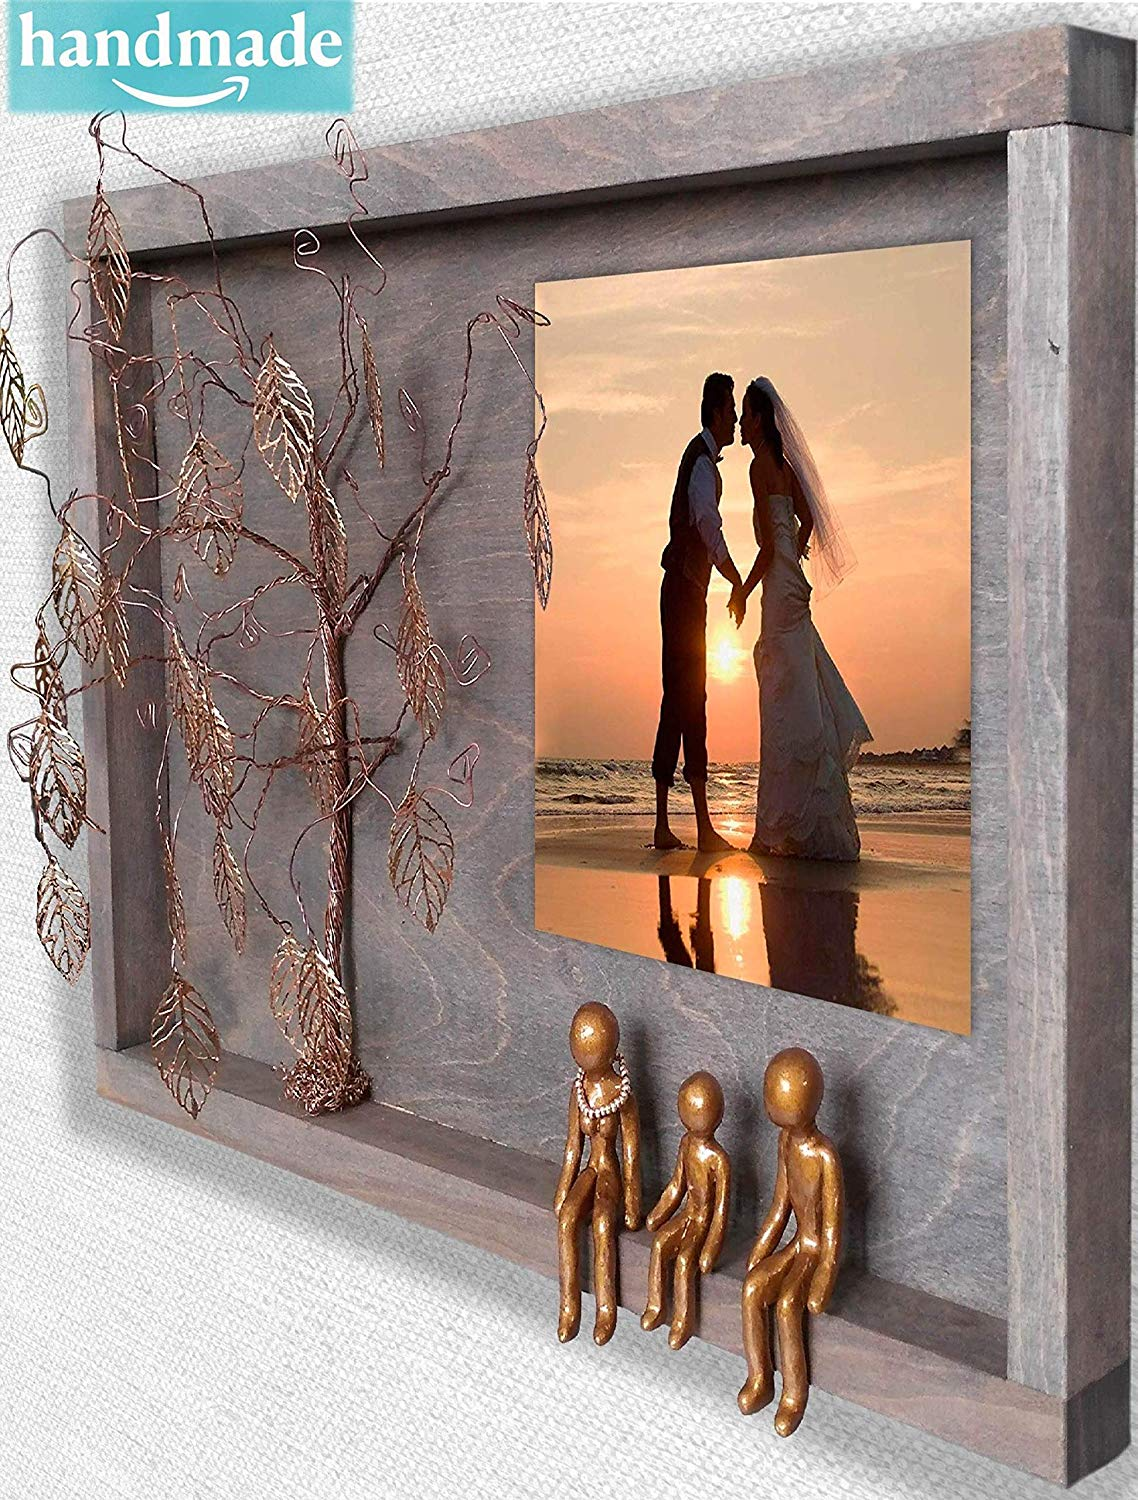 Handmade 3-Figurines 8th 19th Bronze Anniversary Picture Frame Collage forWall Charmers 8 19 21 Year Wedding Willow Family Tree Gift Wife Husband Men Her Mom Son Mother Personalized Gift OPB3R